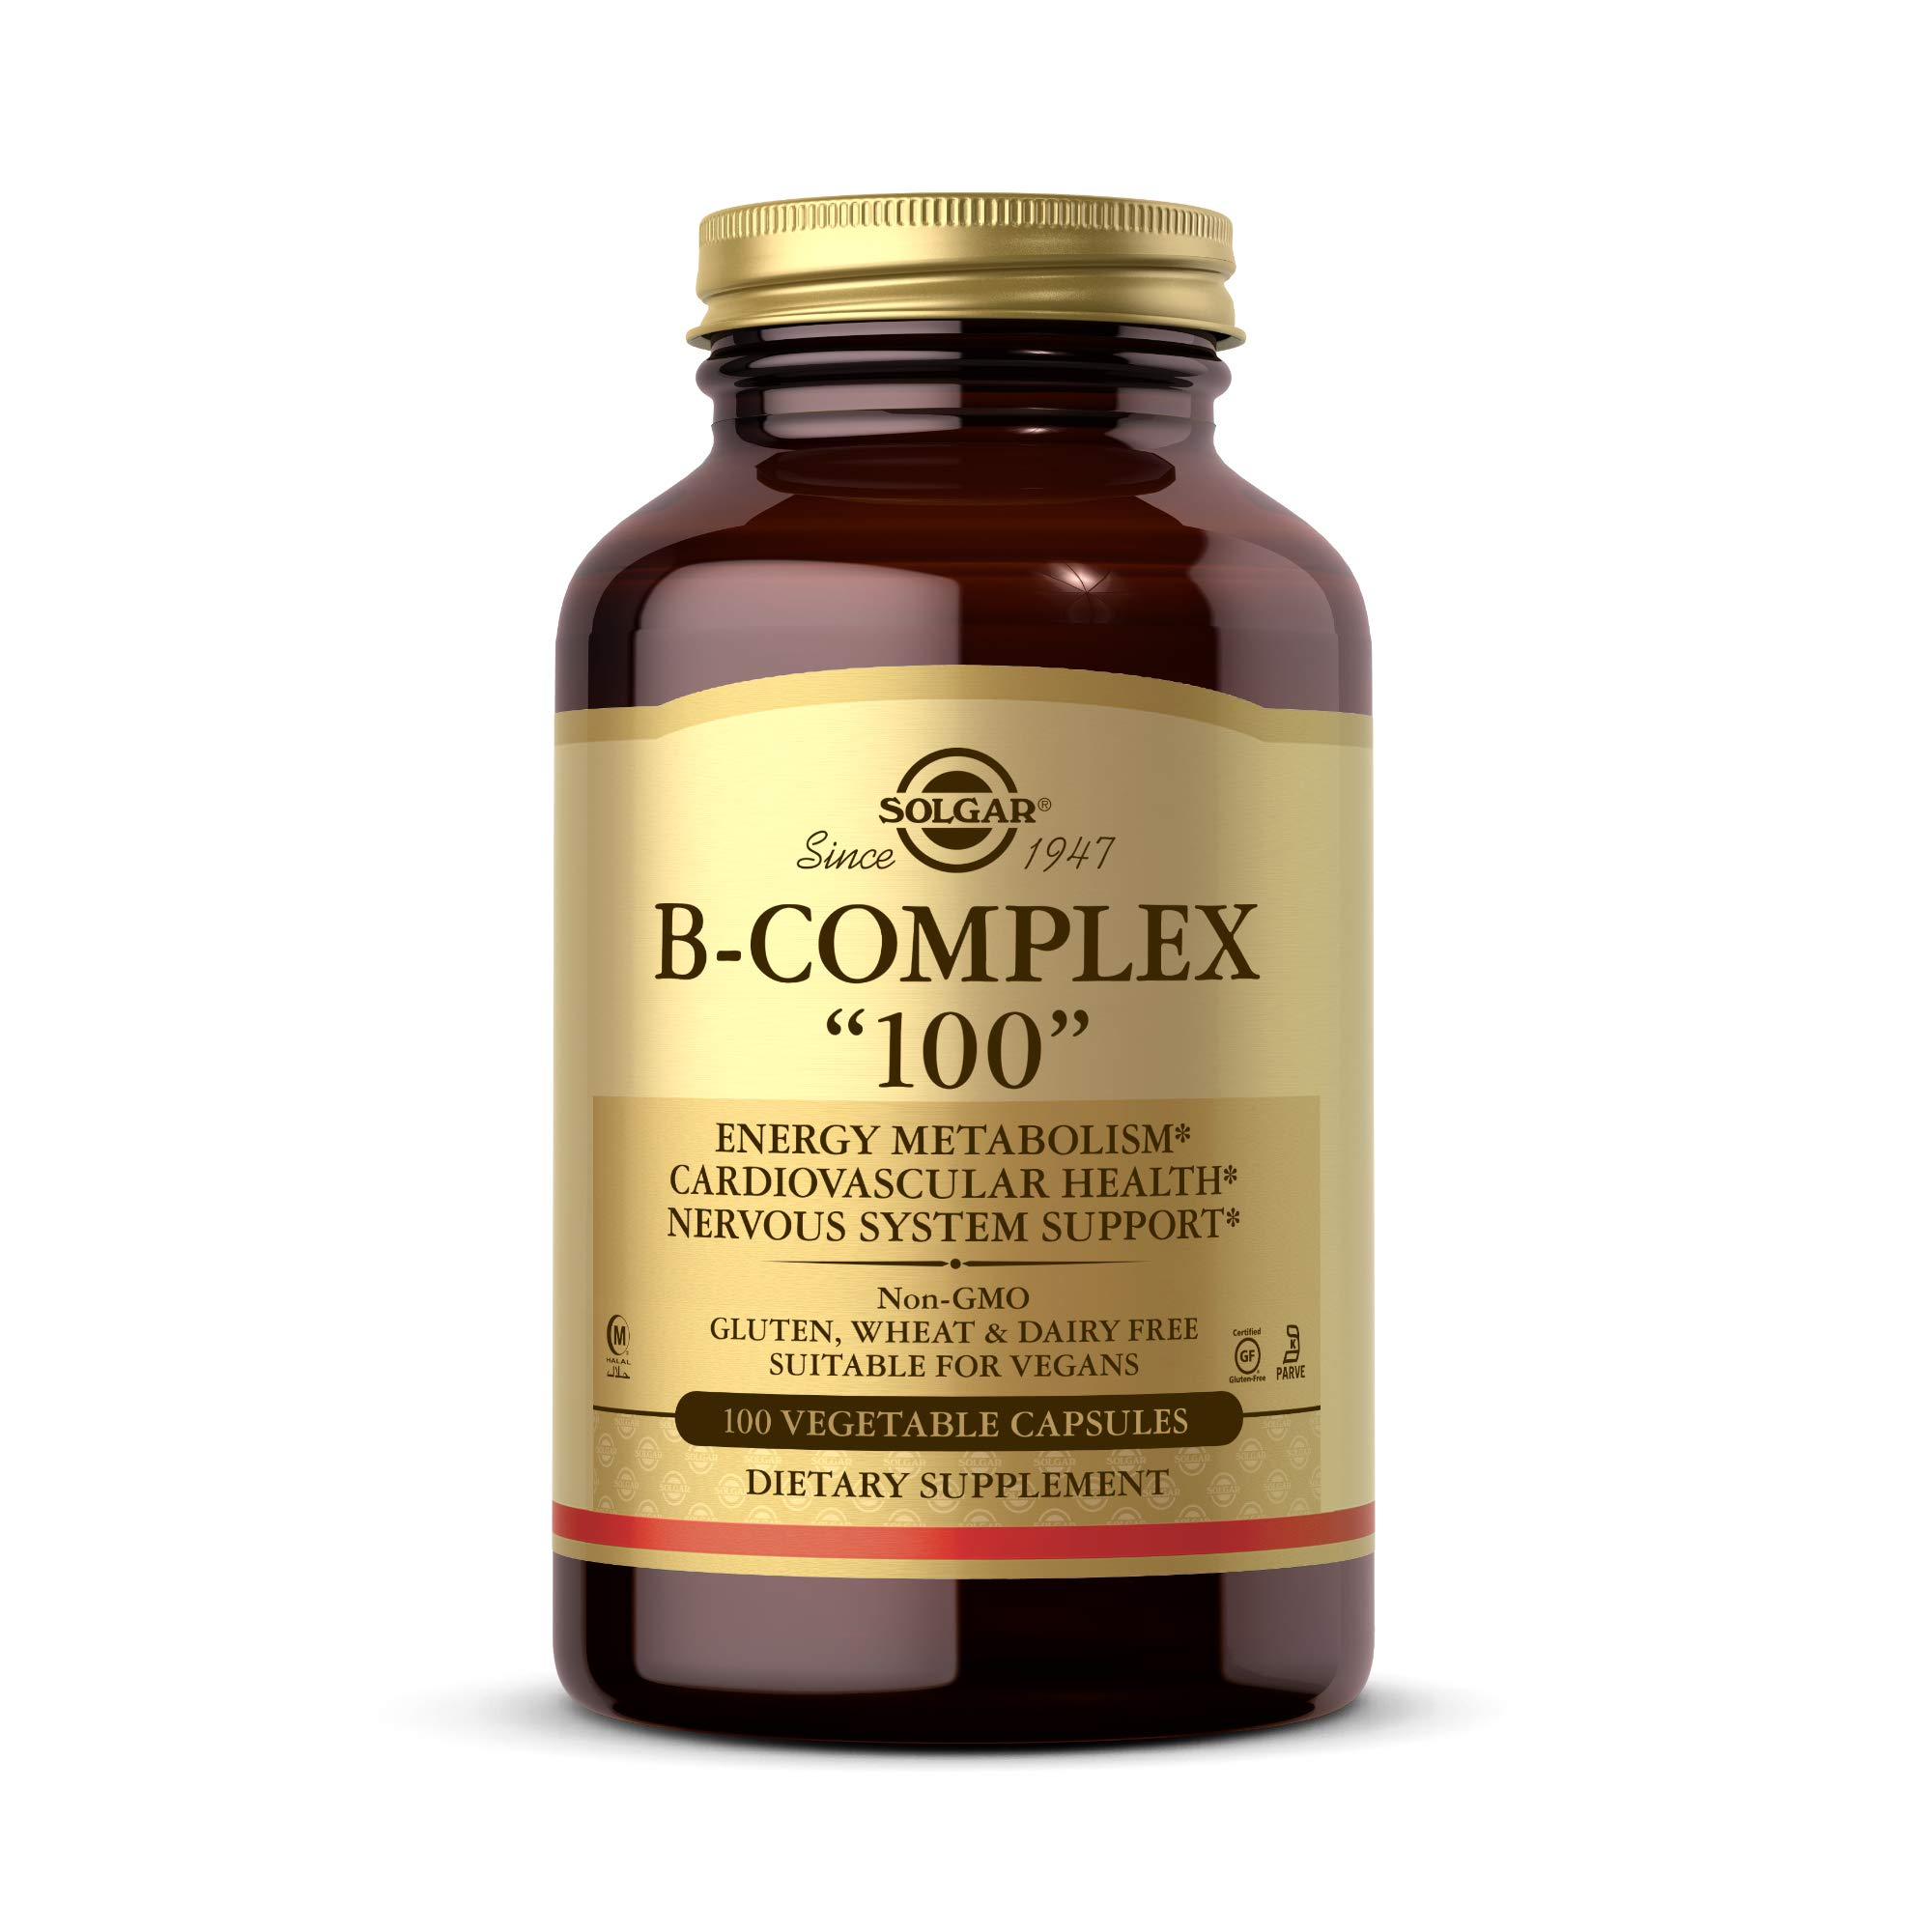 "Solgar B-Complex ""100"", 100 Vegetable Capsules - Heart Health - Nervous System Support - Supports Energy Metabolism - Non GMO, Vegan, Gluten Free, Dairy Free, Kosher, Halal - 100 Servings"